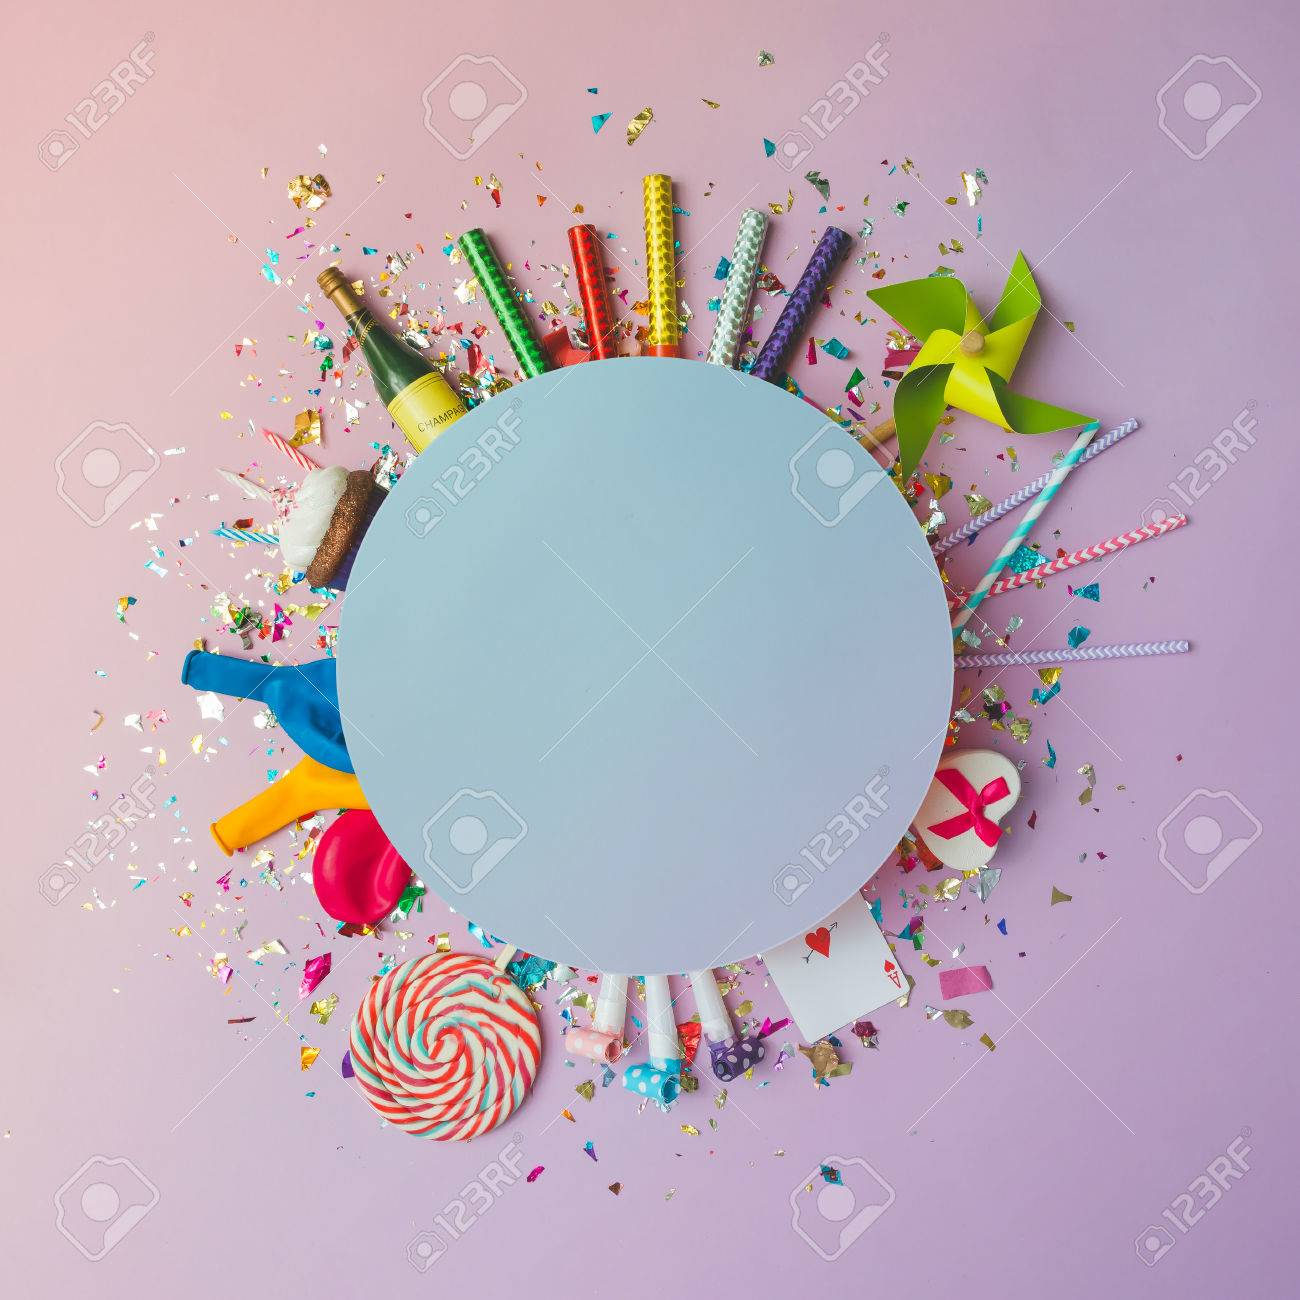 Colorful celebration background with various party confetti, balloons, streamers, fireworks and decoration on pink background. Flat lay. - 68075374